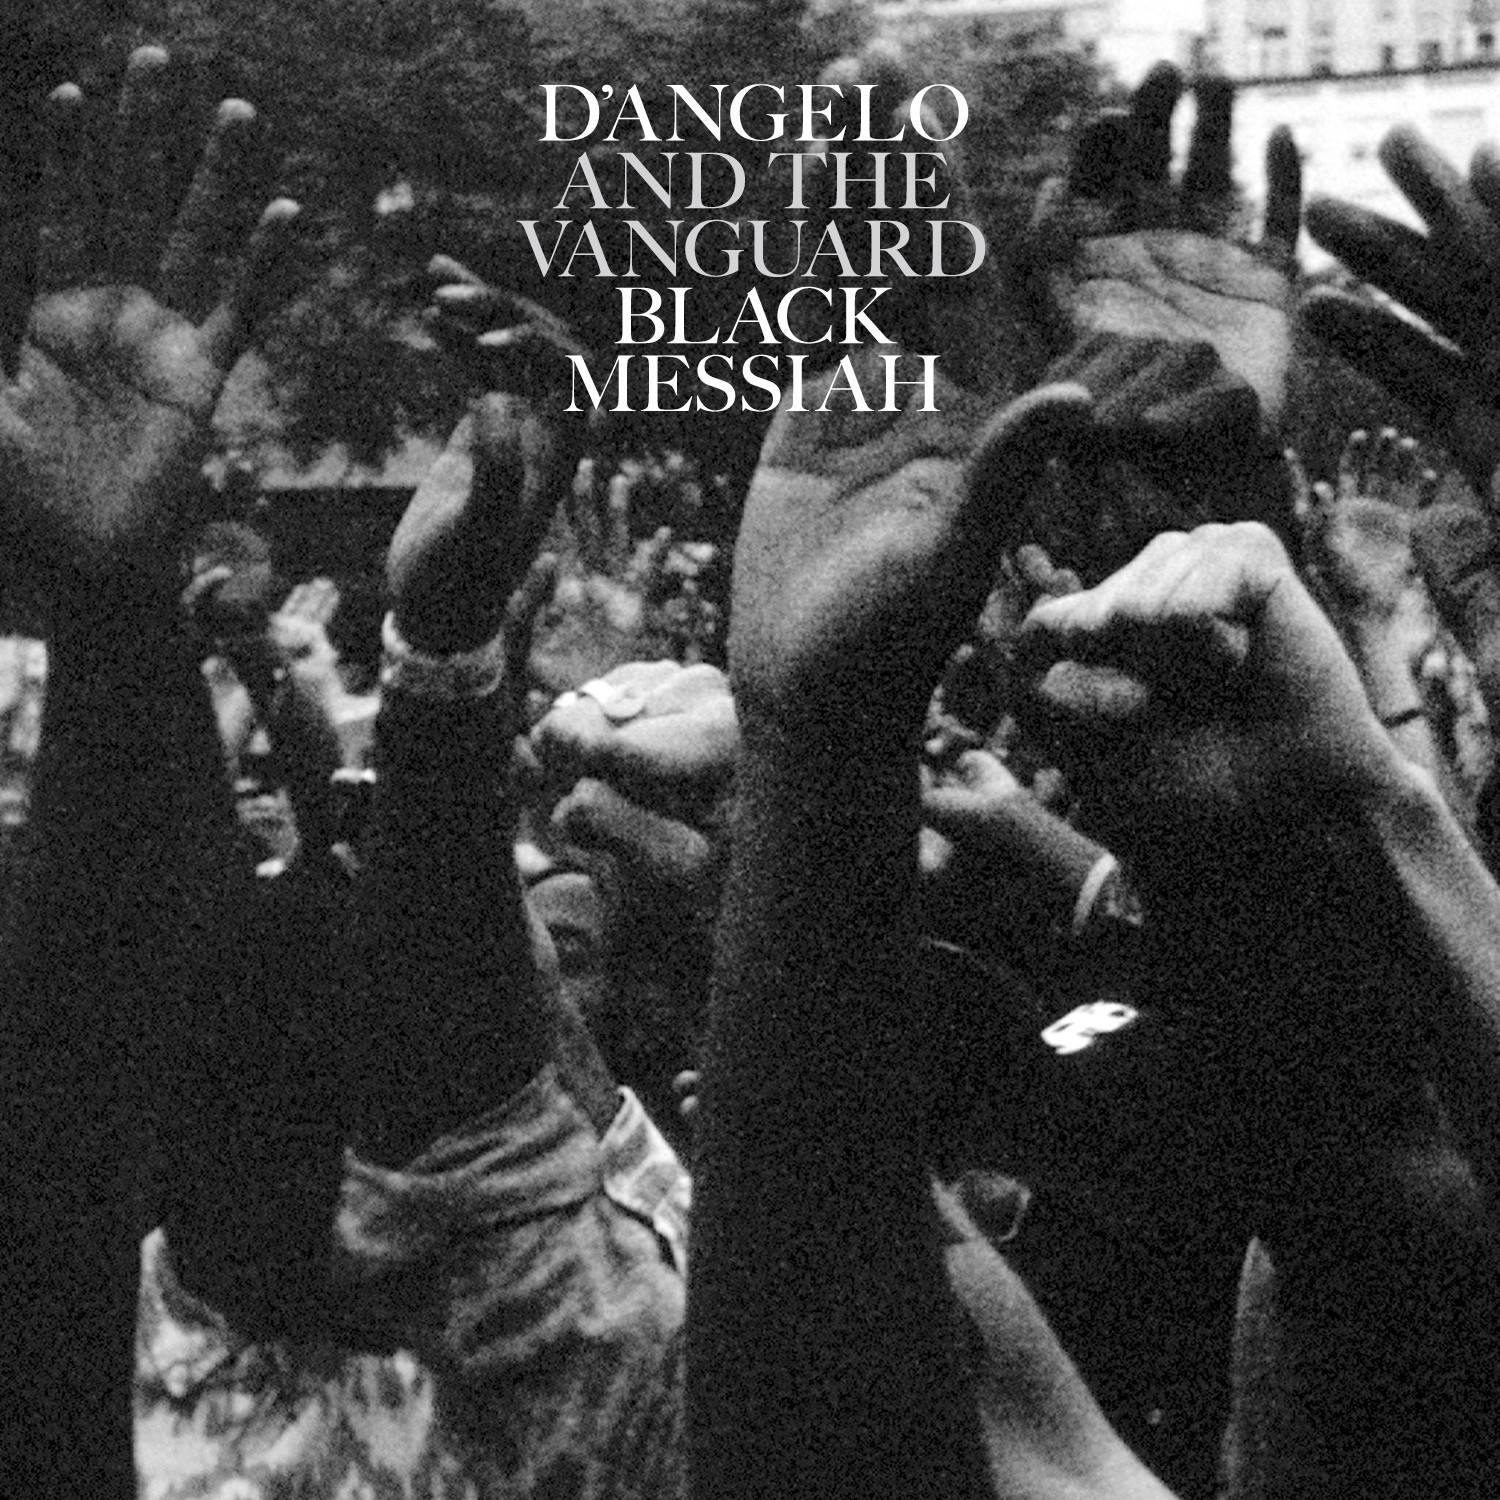 D'Angelo's 'Black Messiah' plays to message of rising up